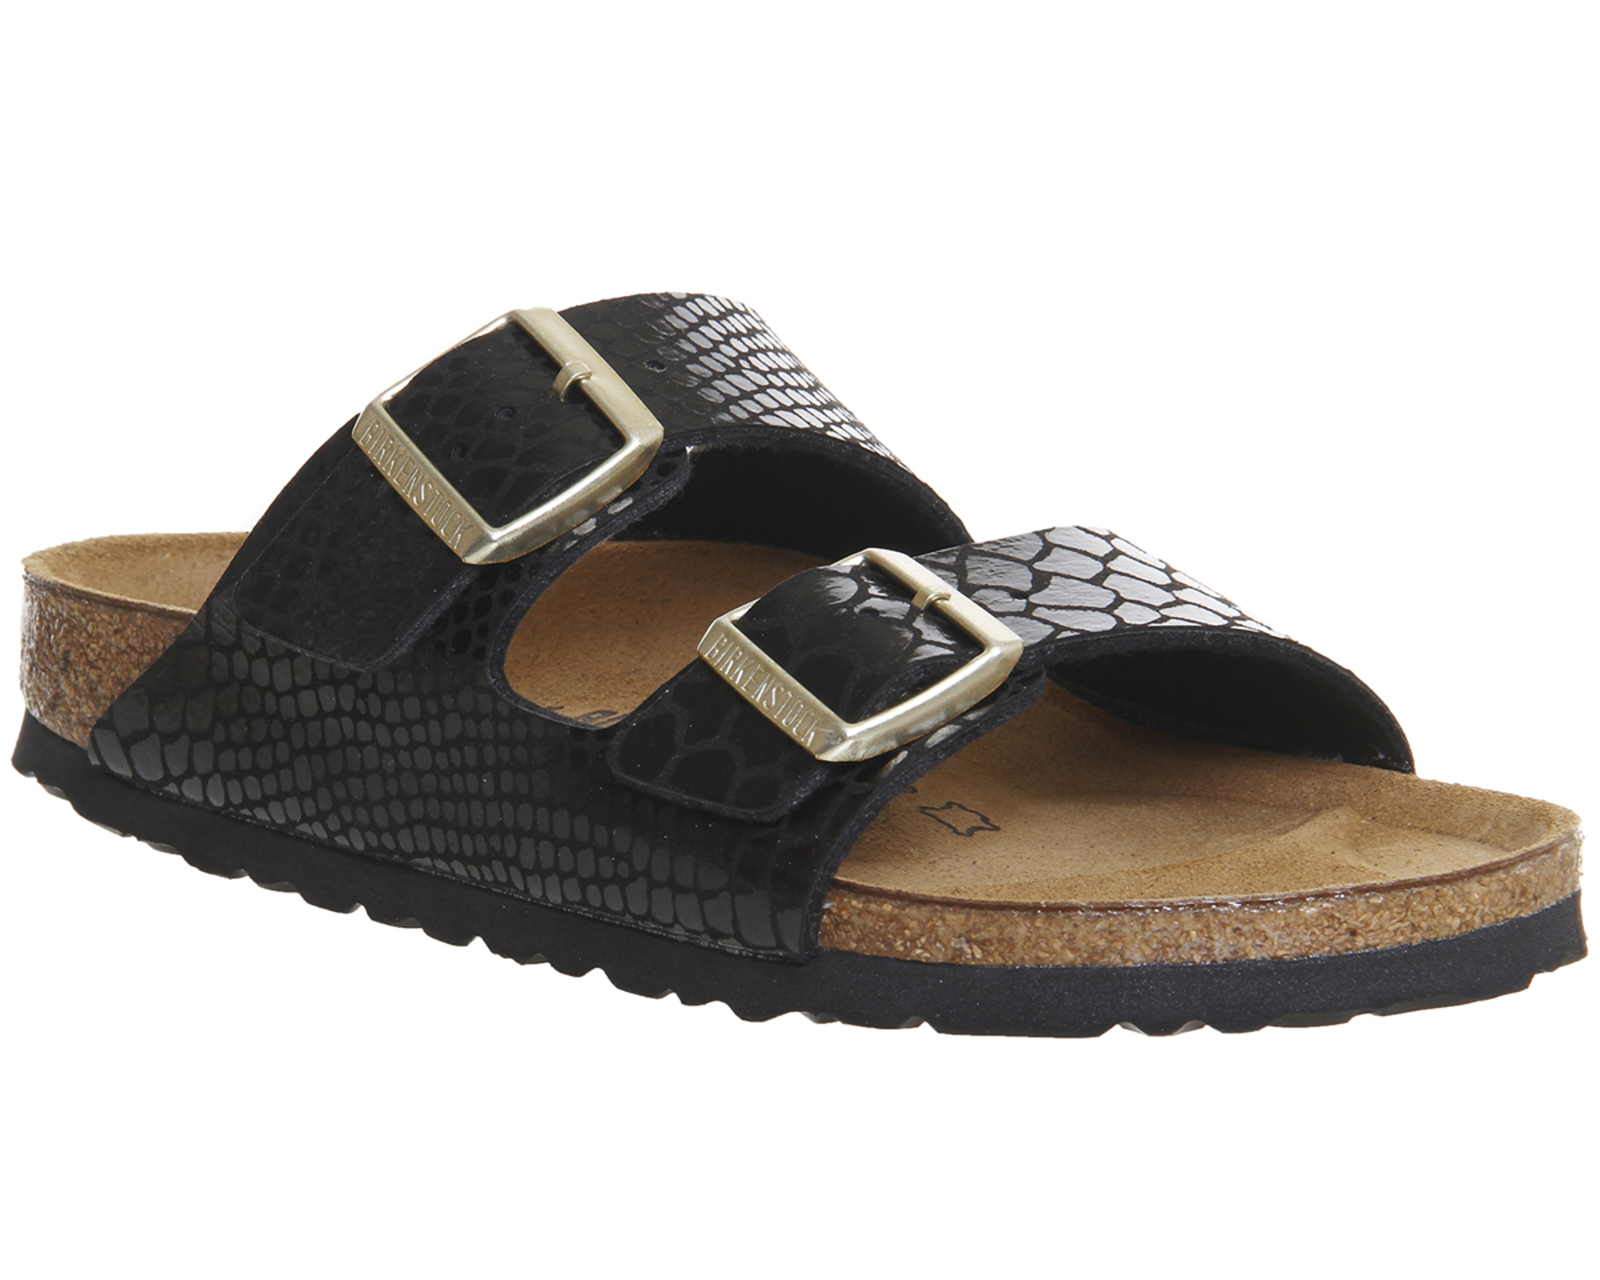 f9a318a7939 Sentinel Womens Birkenstock Arizona Two Strap SHINY SNAKE BLACK Sandals